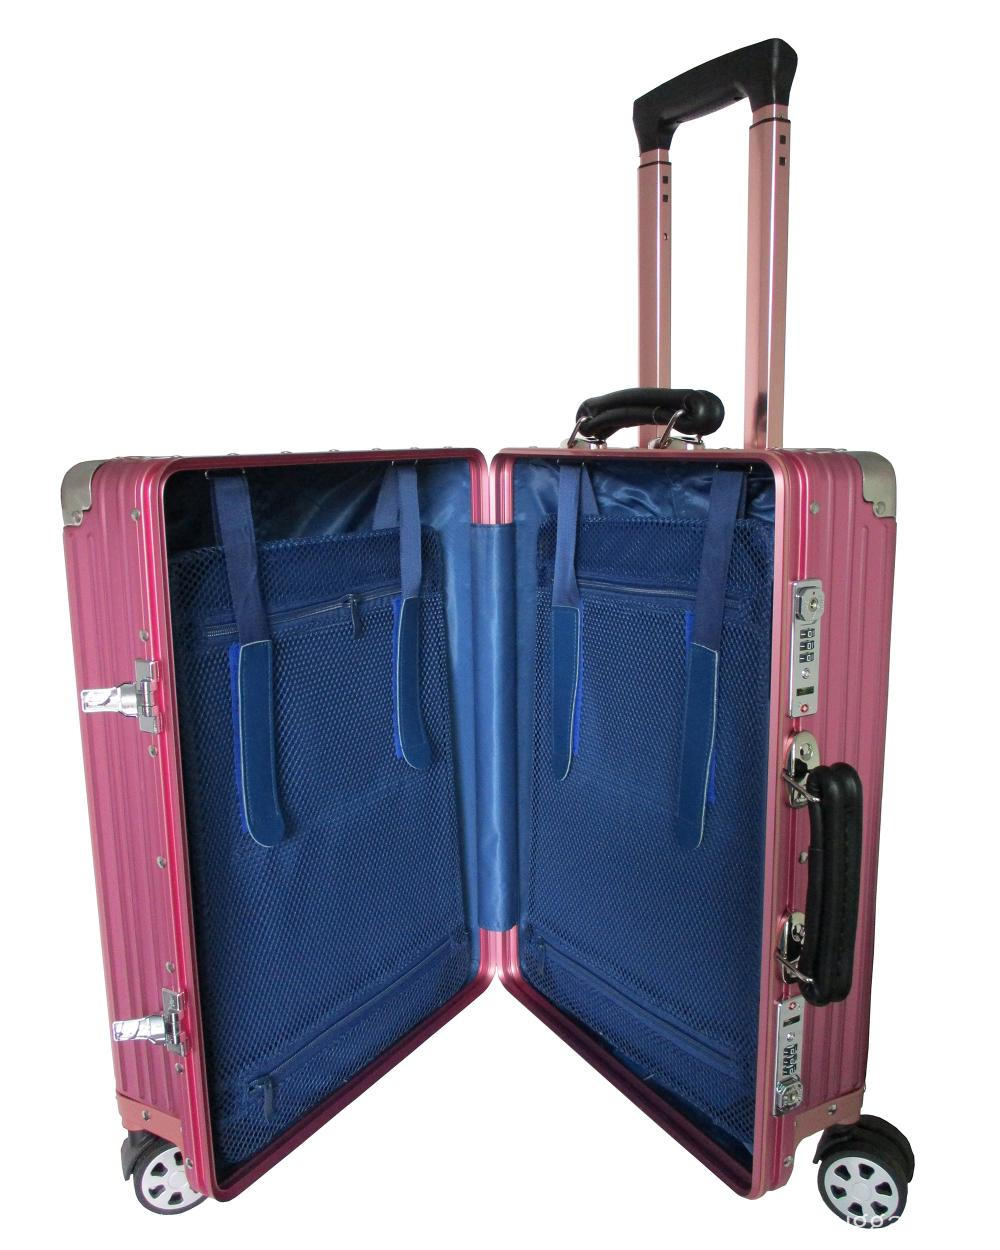 Aluminum alloy luggage suitcase